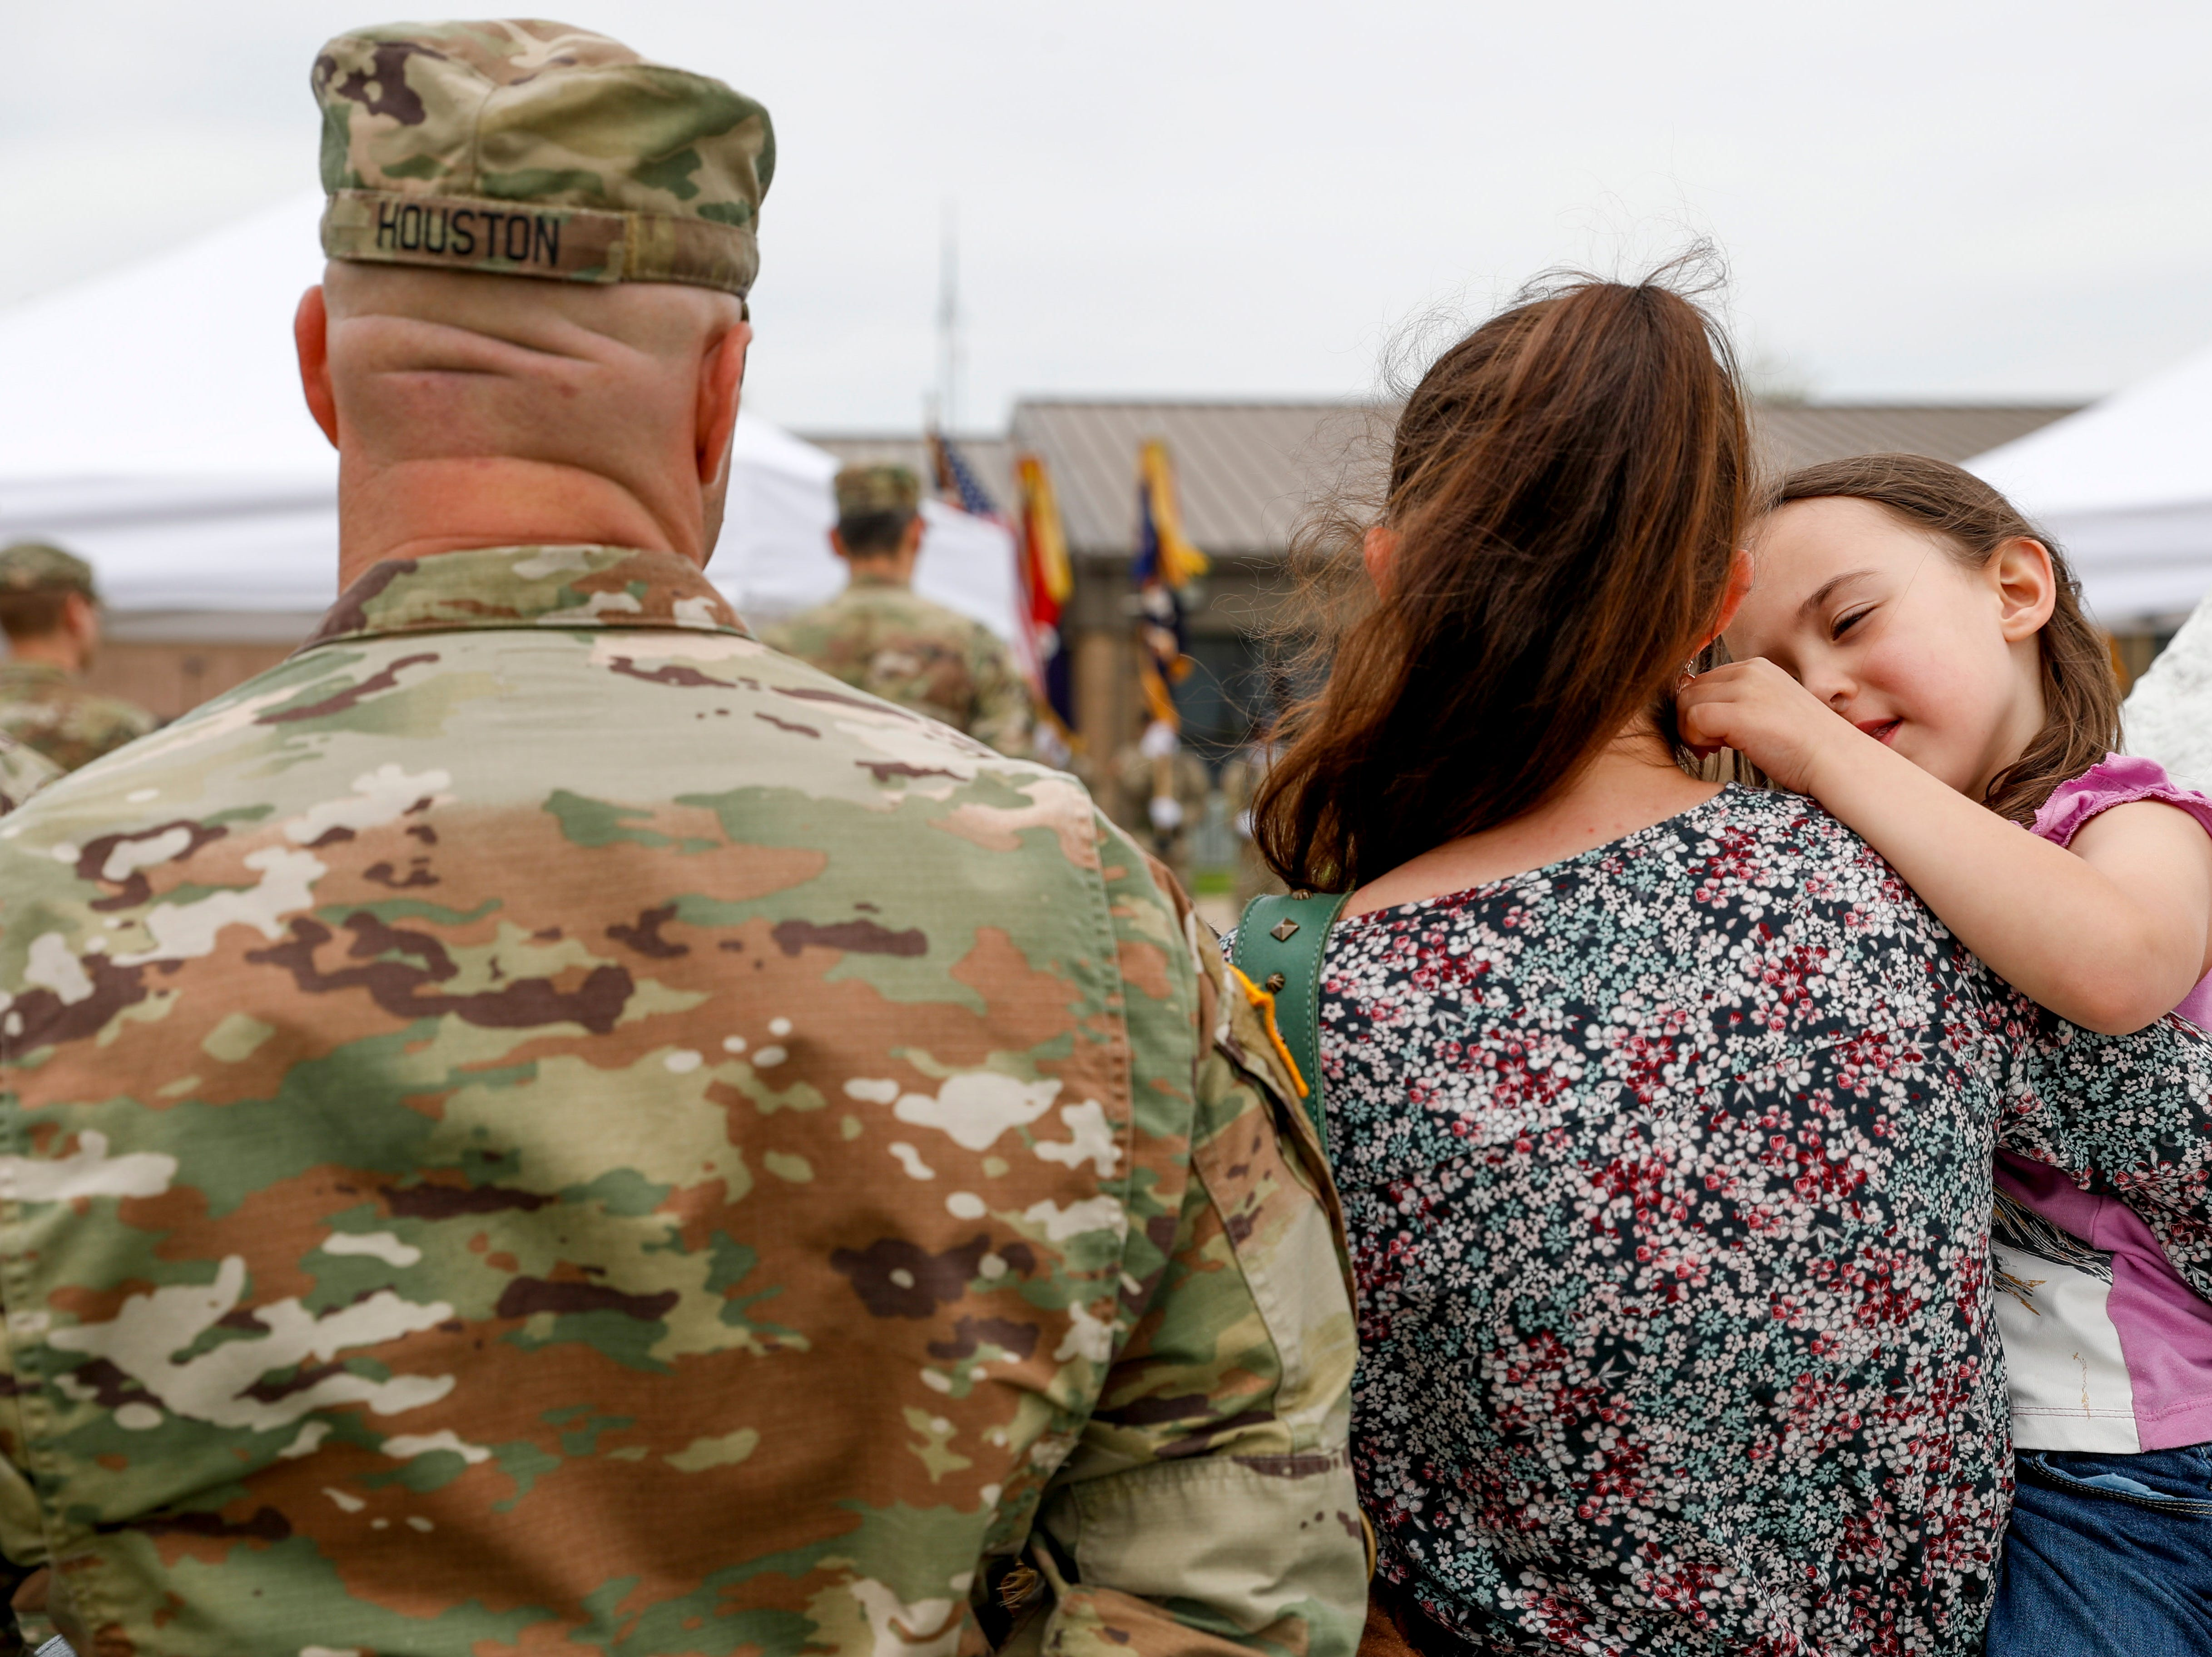 Lylah Houston, 4, right, plays with her mother, Rachel Houston's, hair while watching soldiers with her father 1SG Anthony Houston, left, during a colors casing ceremony prior to deployment for Ukraine at 2 BCT Headquarters in Fort Campbell, KY., on Friday, April 12, 2019.